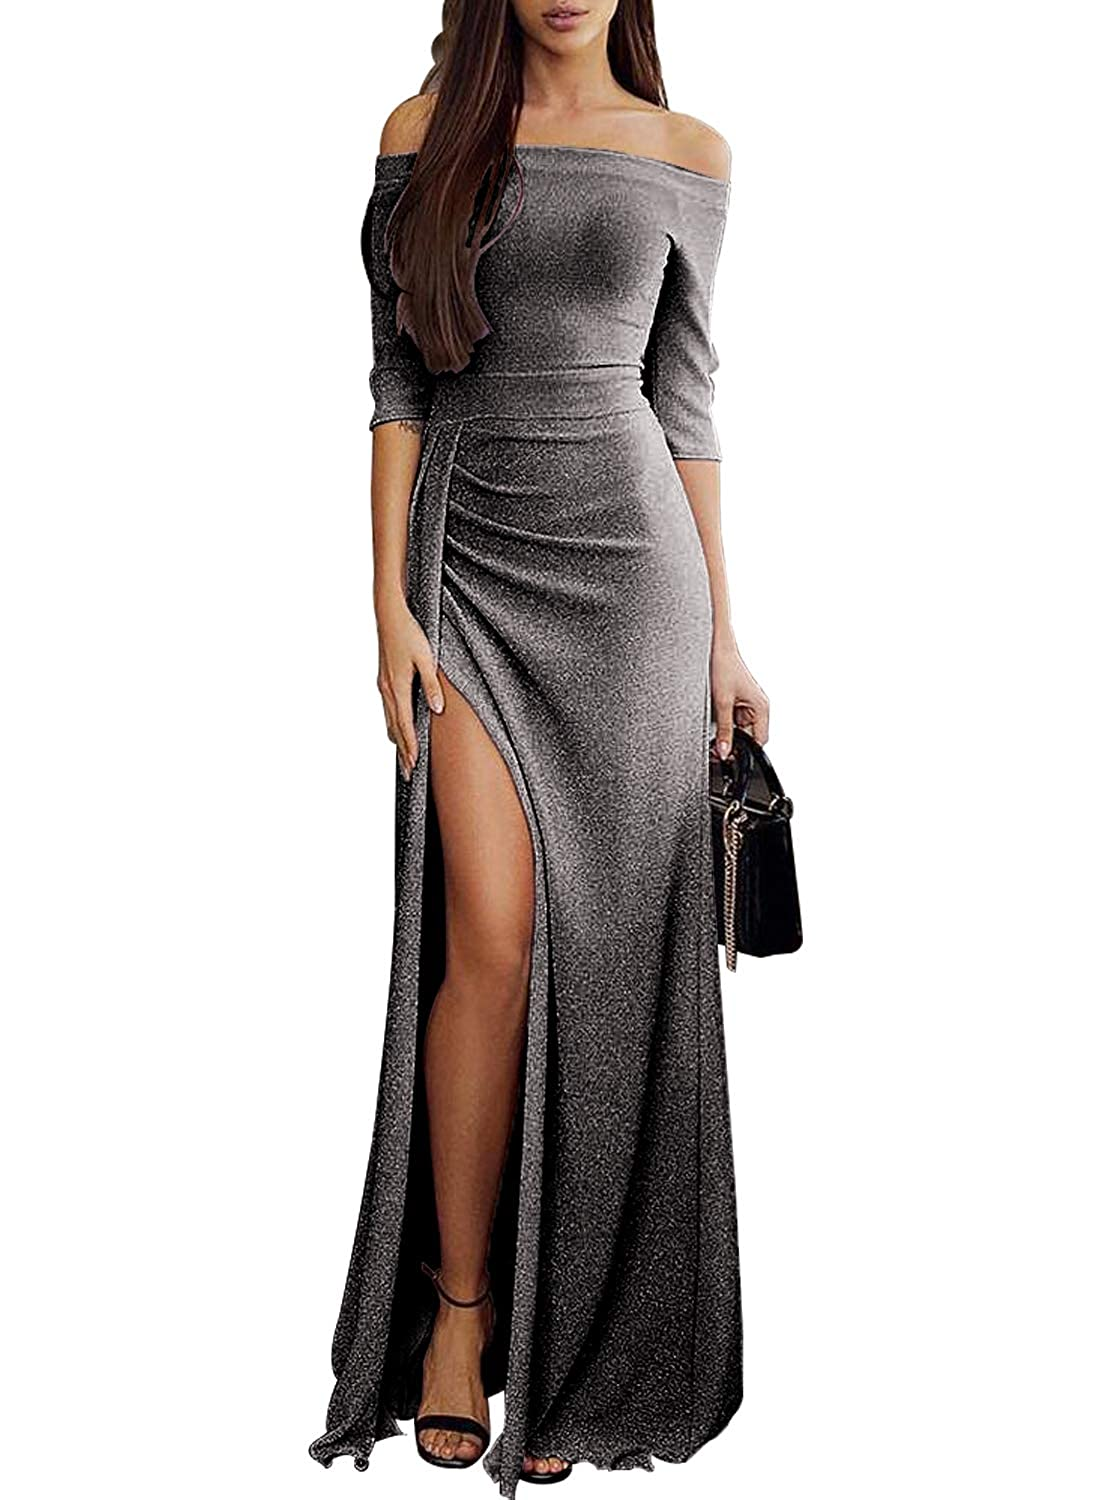 5a01defd Womens Party Dresses Off The Shoulder Sexy Slit Evening Prom Gown Elegant  Formal Dress at Amazon Women's Clothing store: